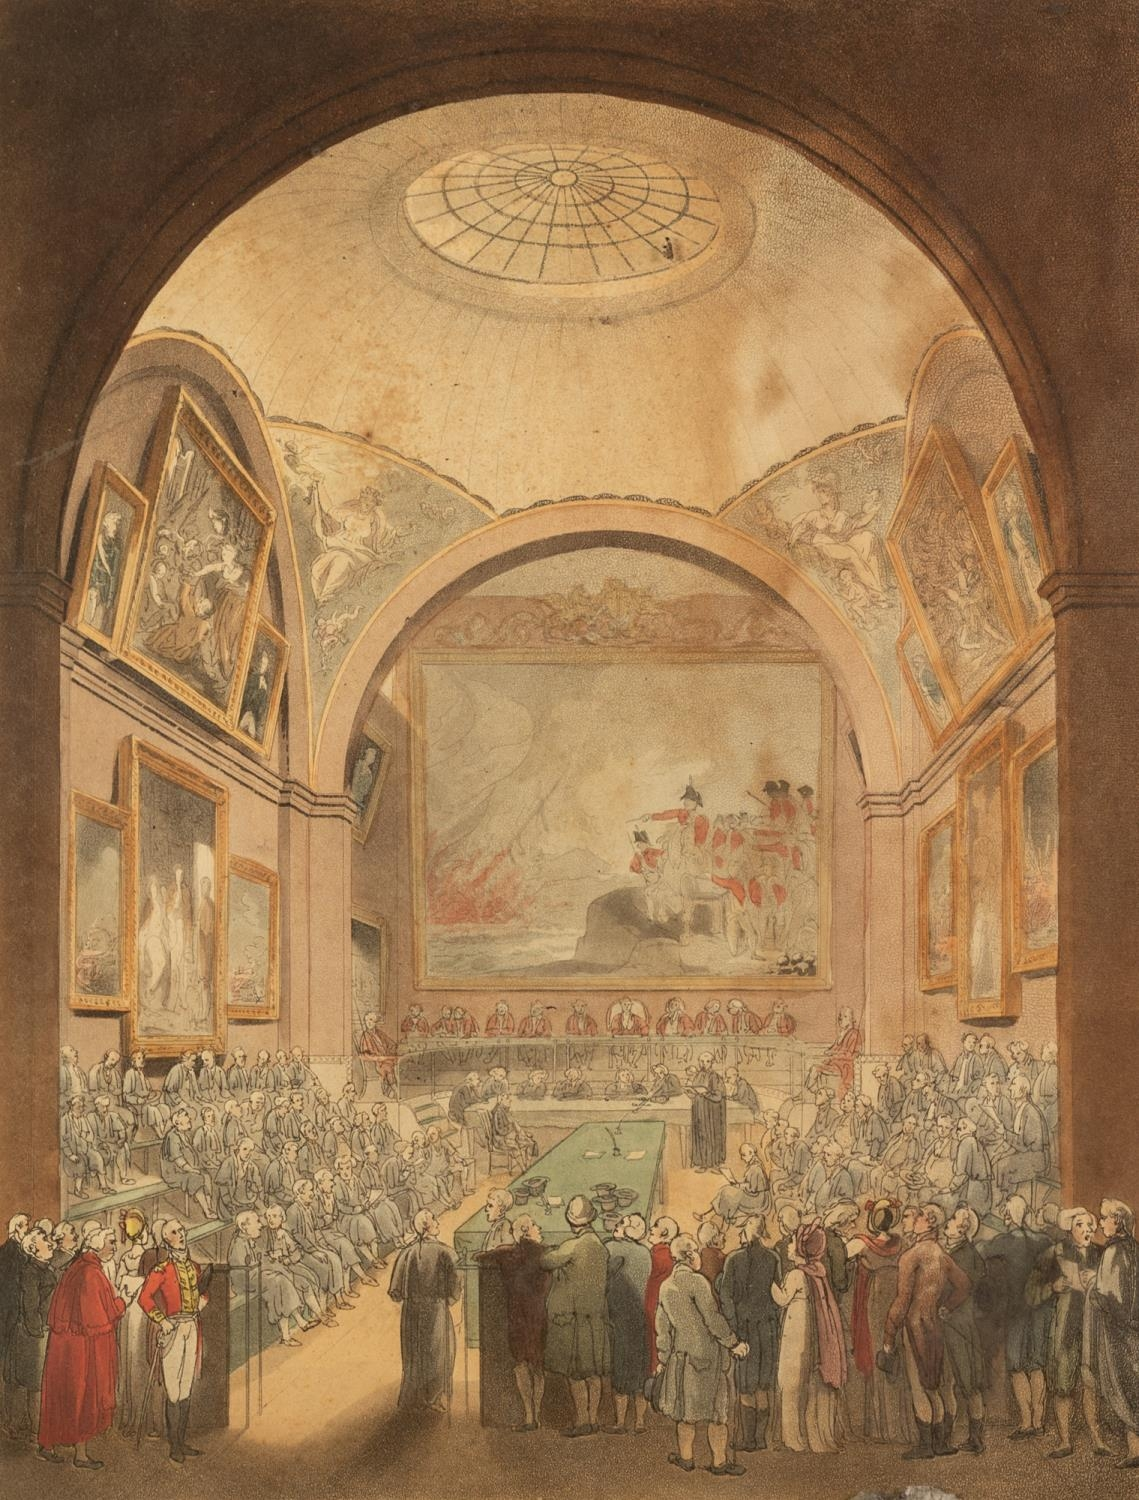 J. BLUCK AFTER ROWLANDSON AND PUGIN HAND COLOURED AQUATINT 'Common Council Chamber, Guildhall'